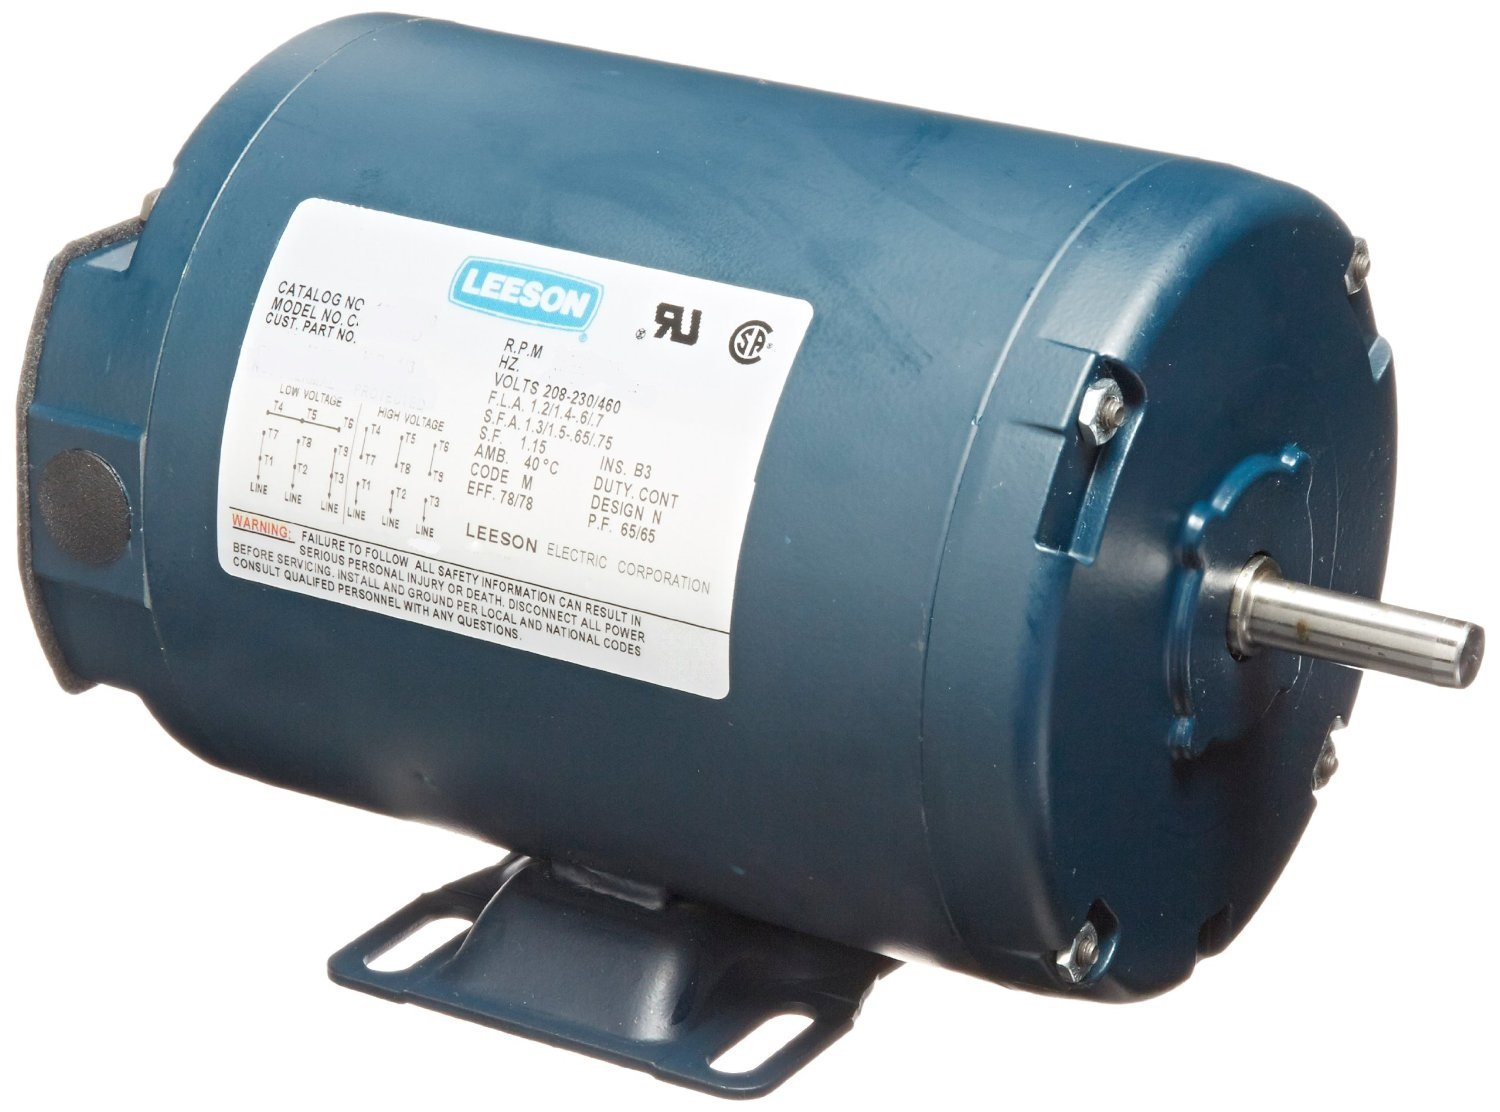 Leeson 102918.00 TENV Rigid Base Motor, 3 Phase, S56 Frame, Rigid Mounting, 1/2HP, 1800 RPM, 208-230/460V Voltage, 60Hz Fequency